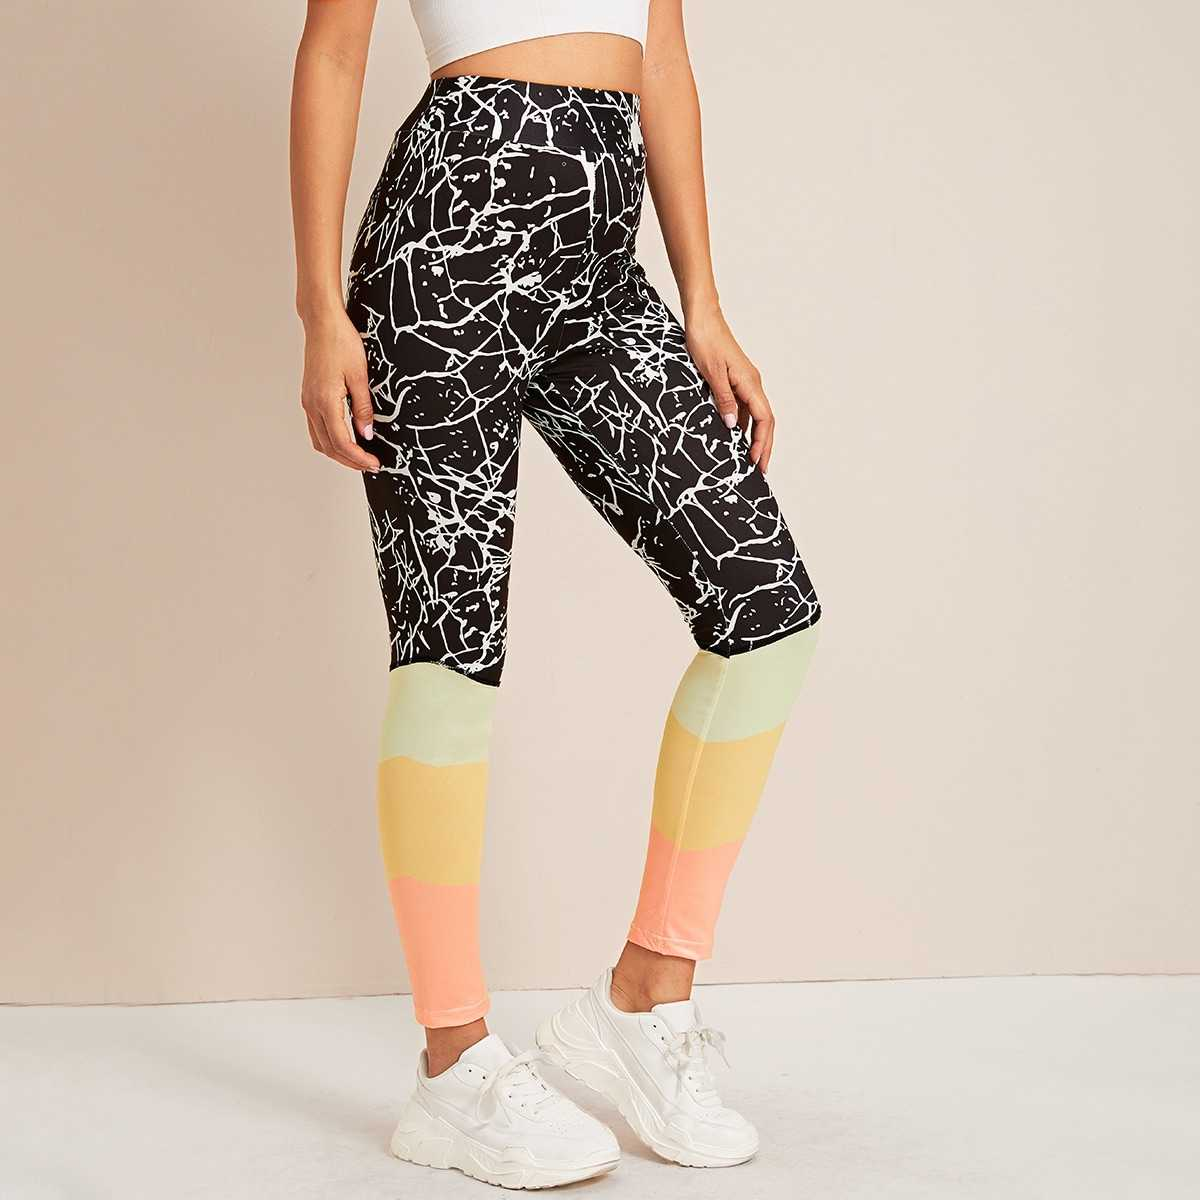 Color-block Wideband Waist Leggings in Multicolor by ROMWE on GOOFASH